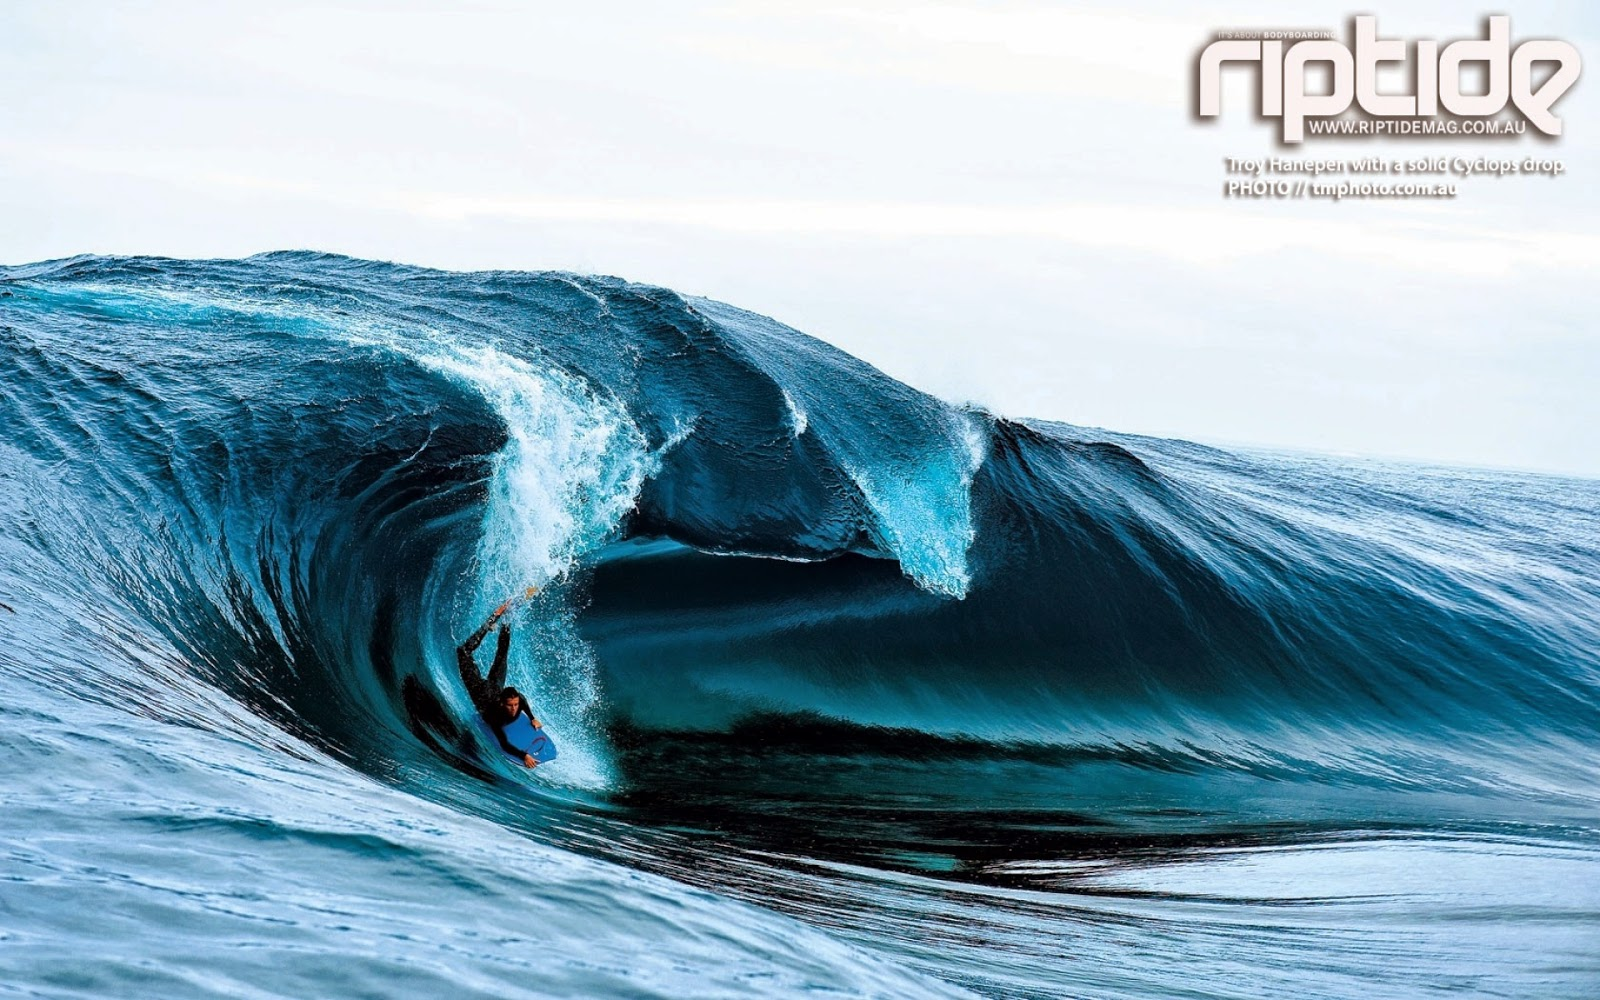 Bodyboarding wallpapers riptide